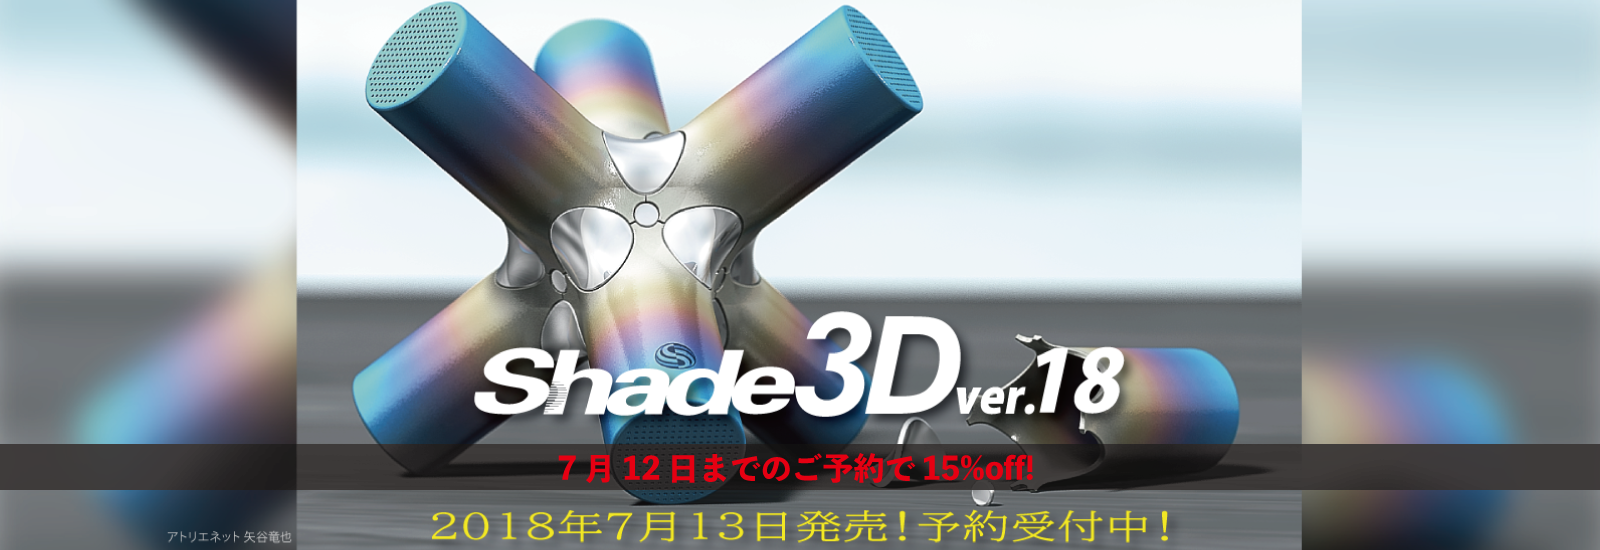 Top Shade3D ver.18予約